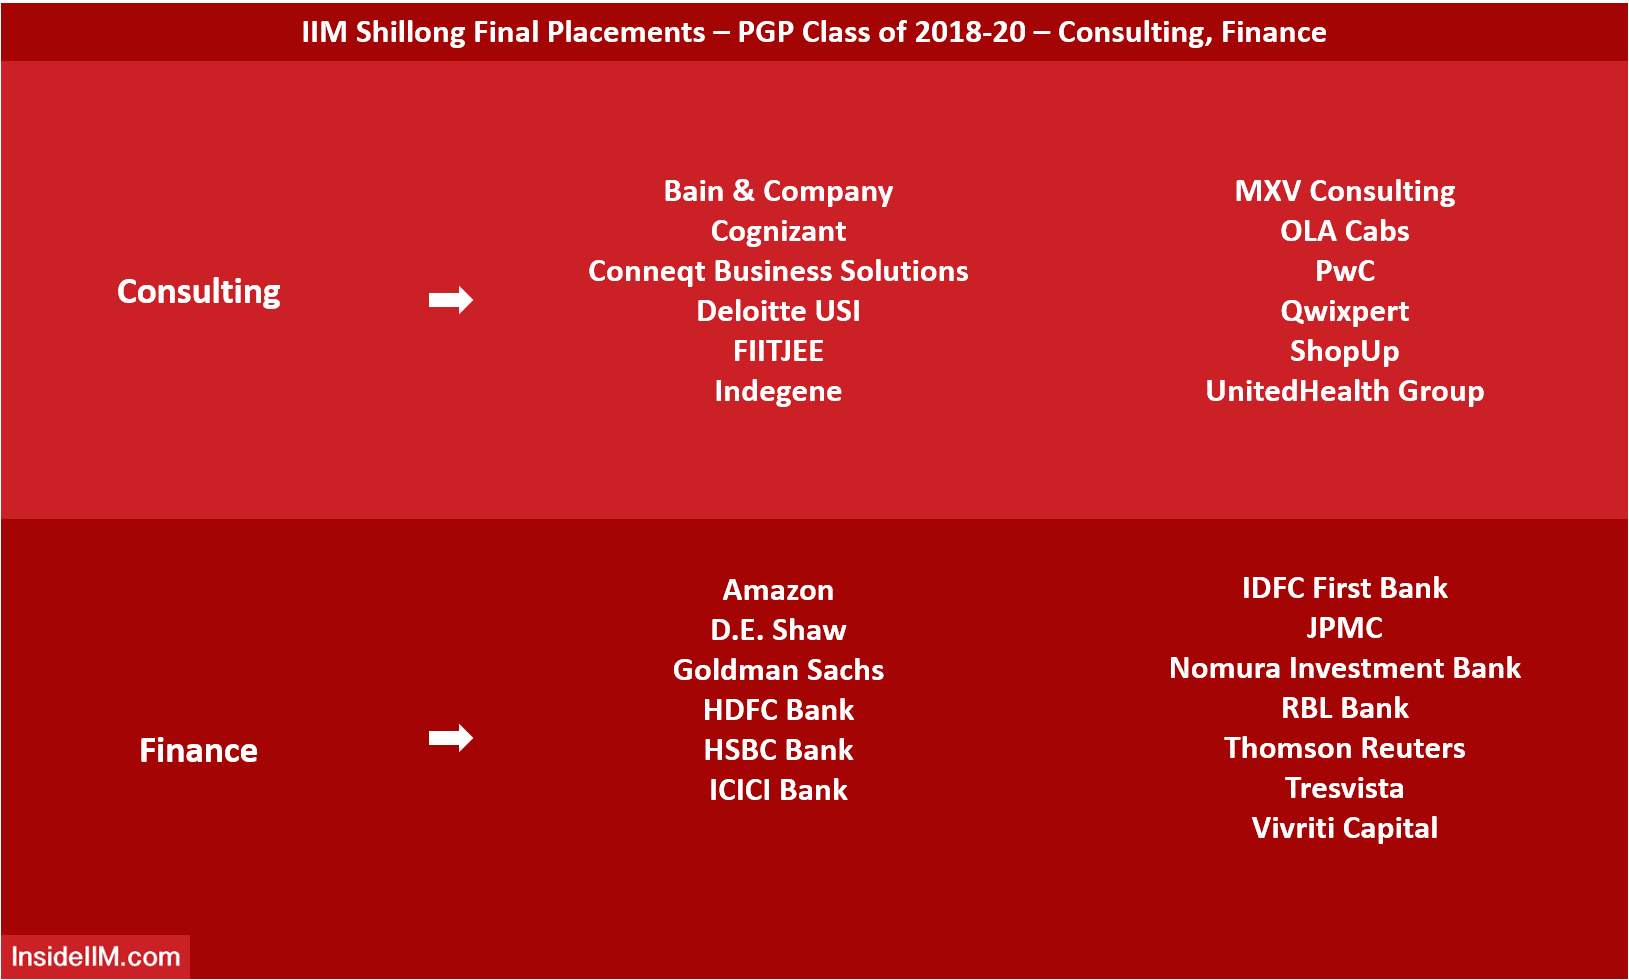 IIM Shillong Final Placements 2020 - Top Consulting, Finance Recruiters